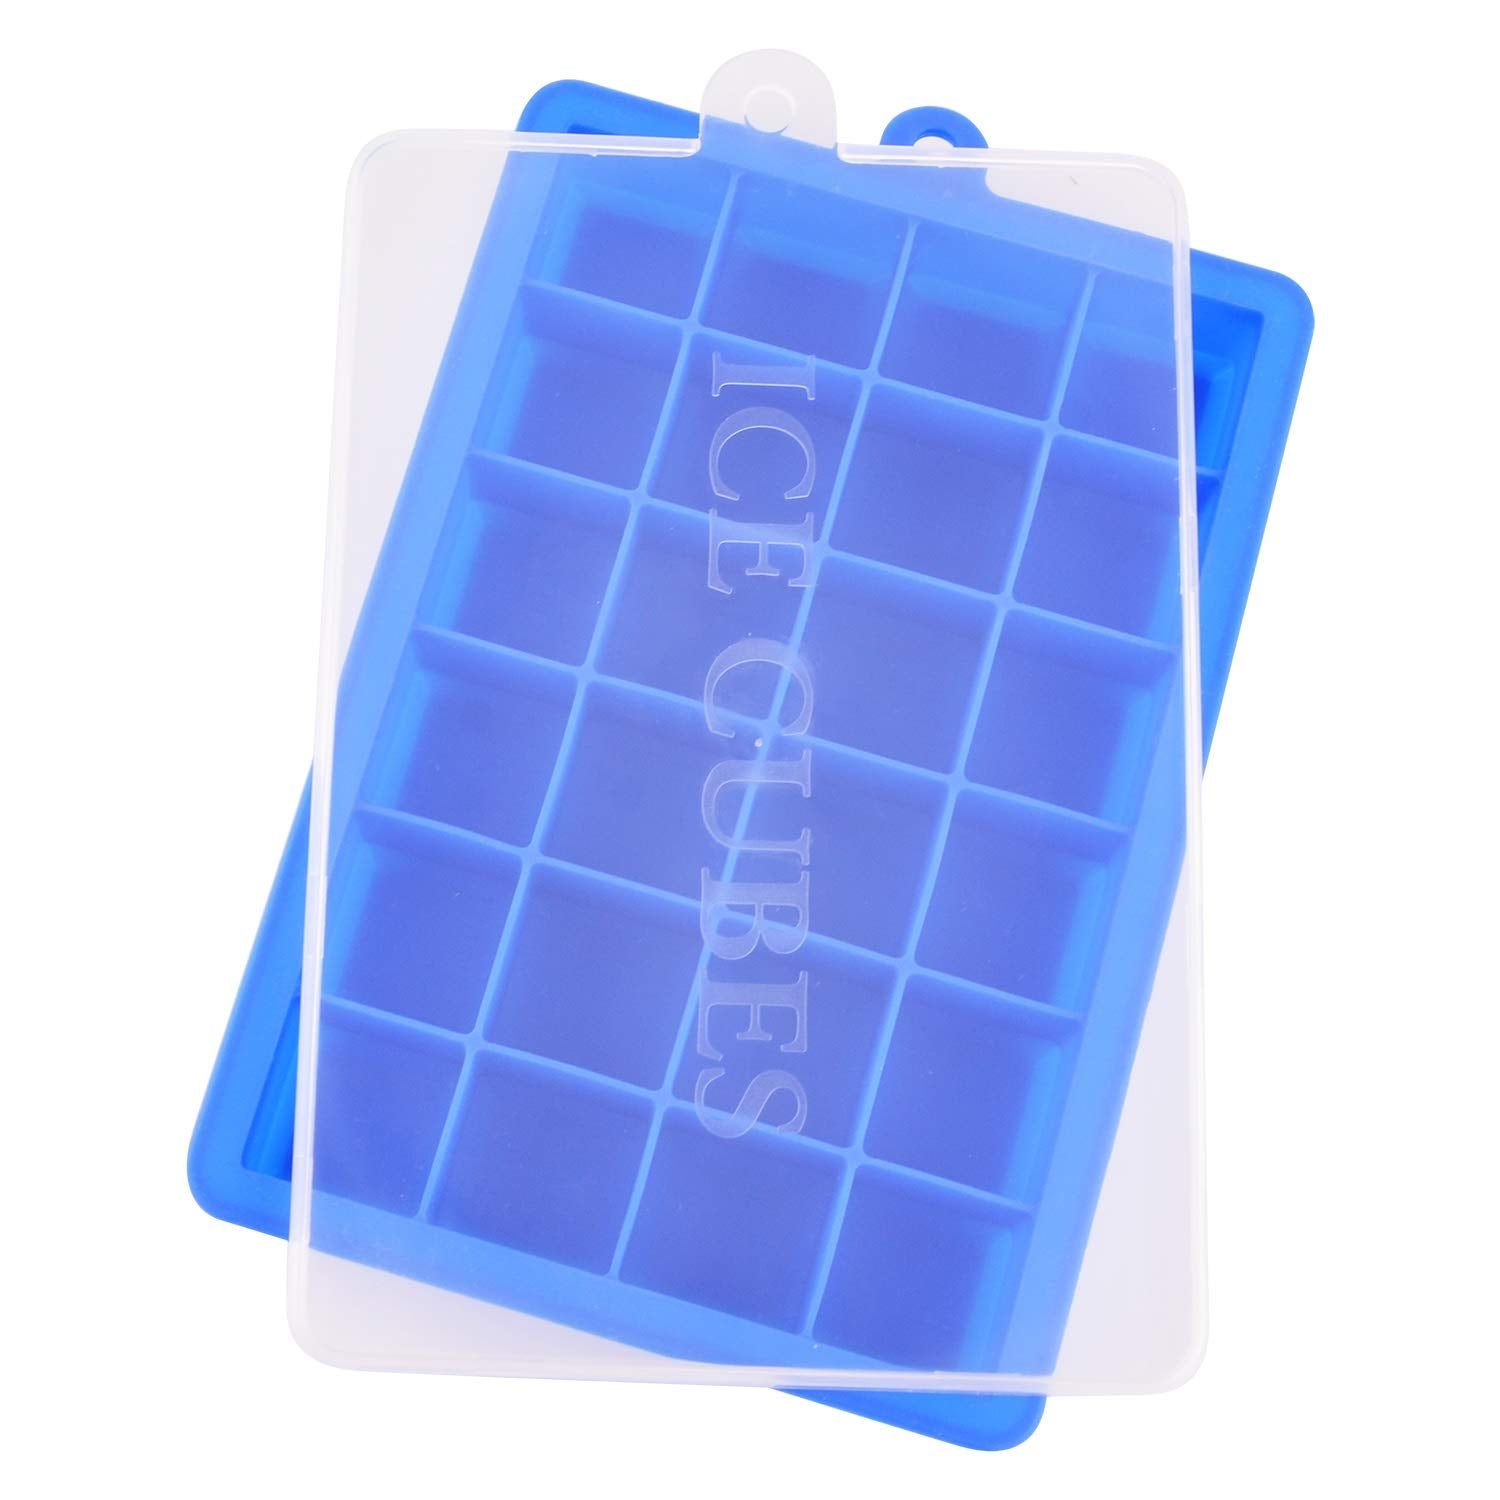 Ice Cube Trays, Silicone Ice Tray Molds Easy Release Ice Jelly Pudding Maker Mold, 24 Cavity (Blue)